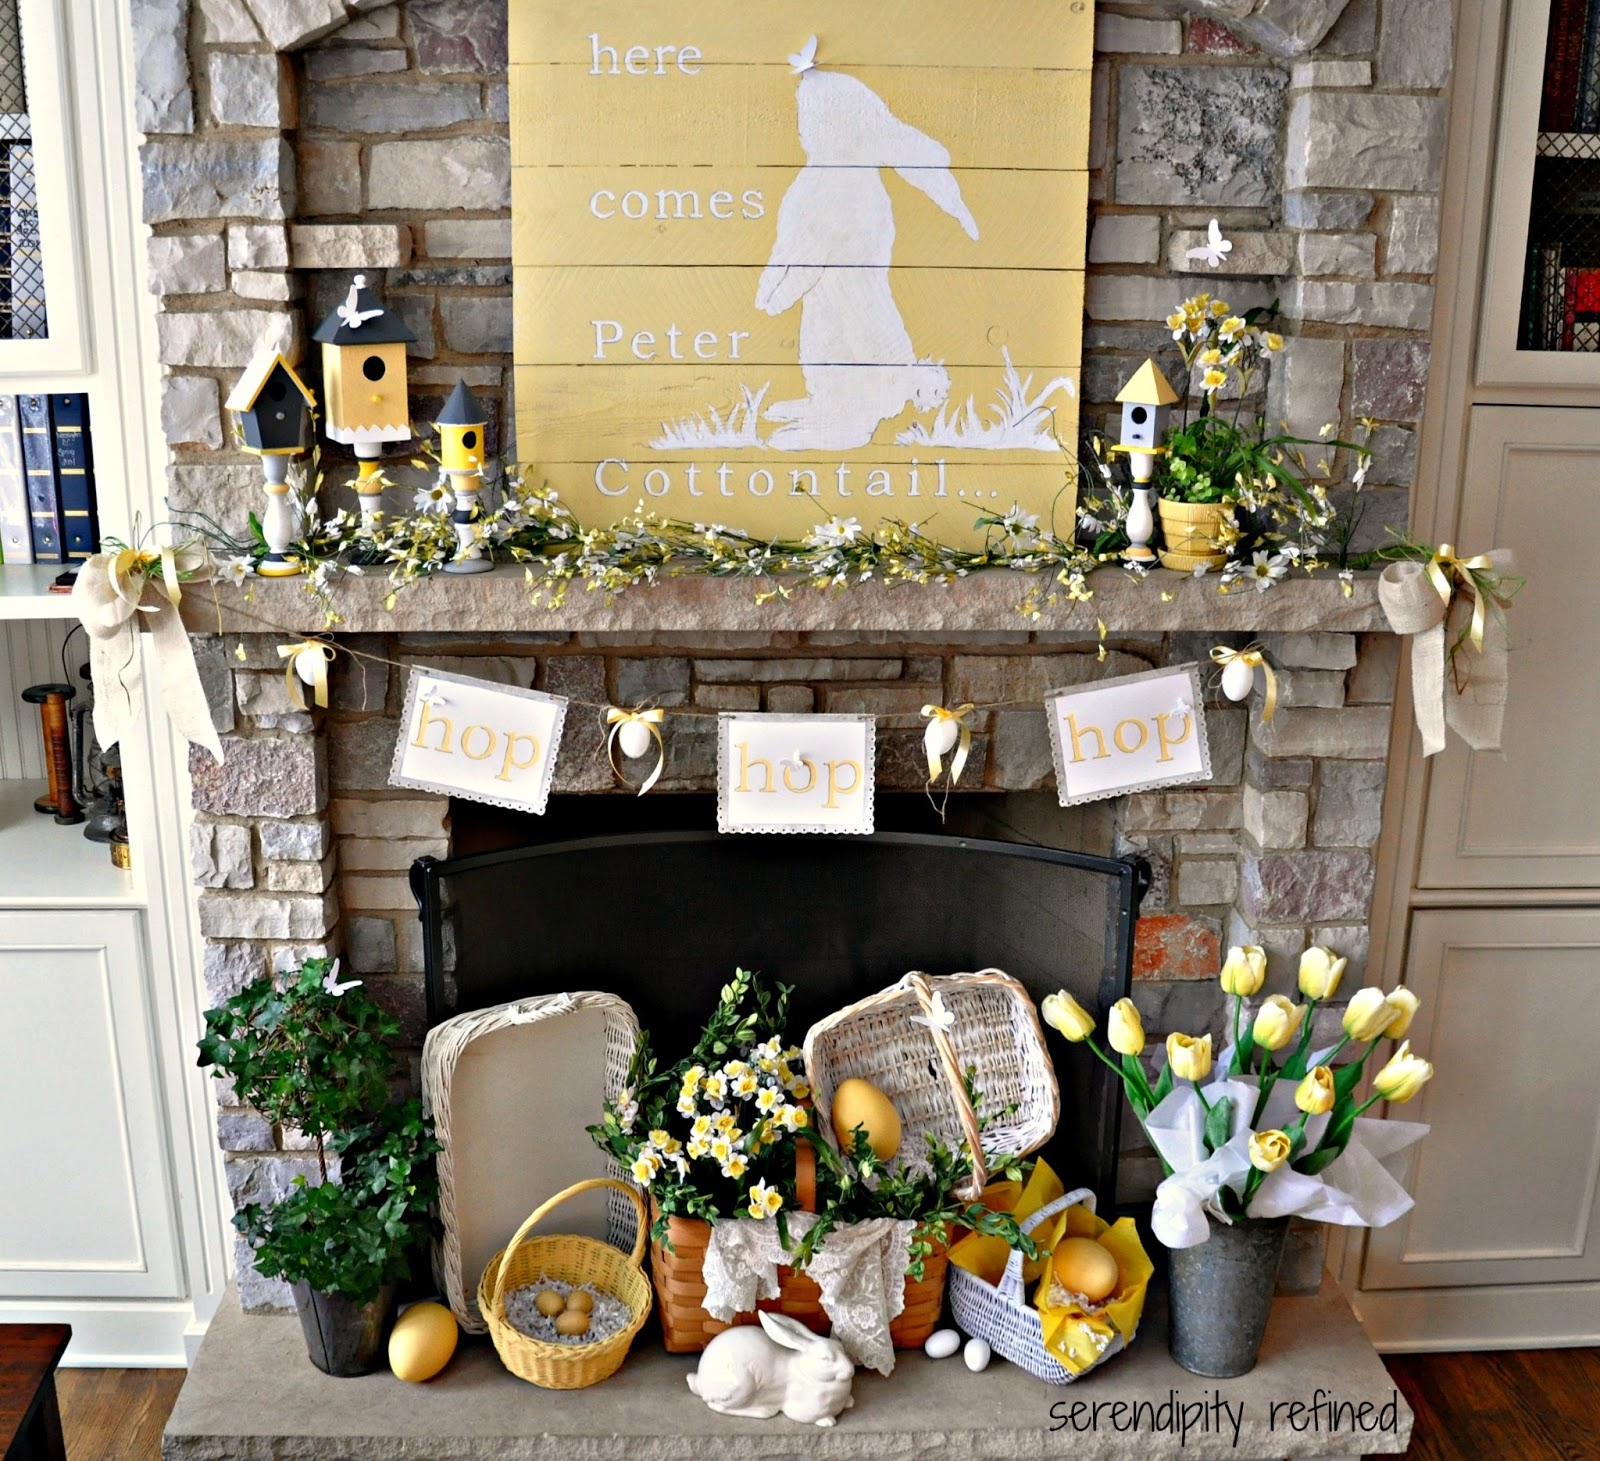 18 Spring Decor Ideas: Serendipity Refined Blog: Yellow And White Spring Bunny Mantel